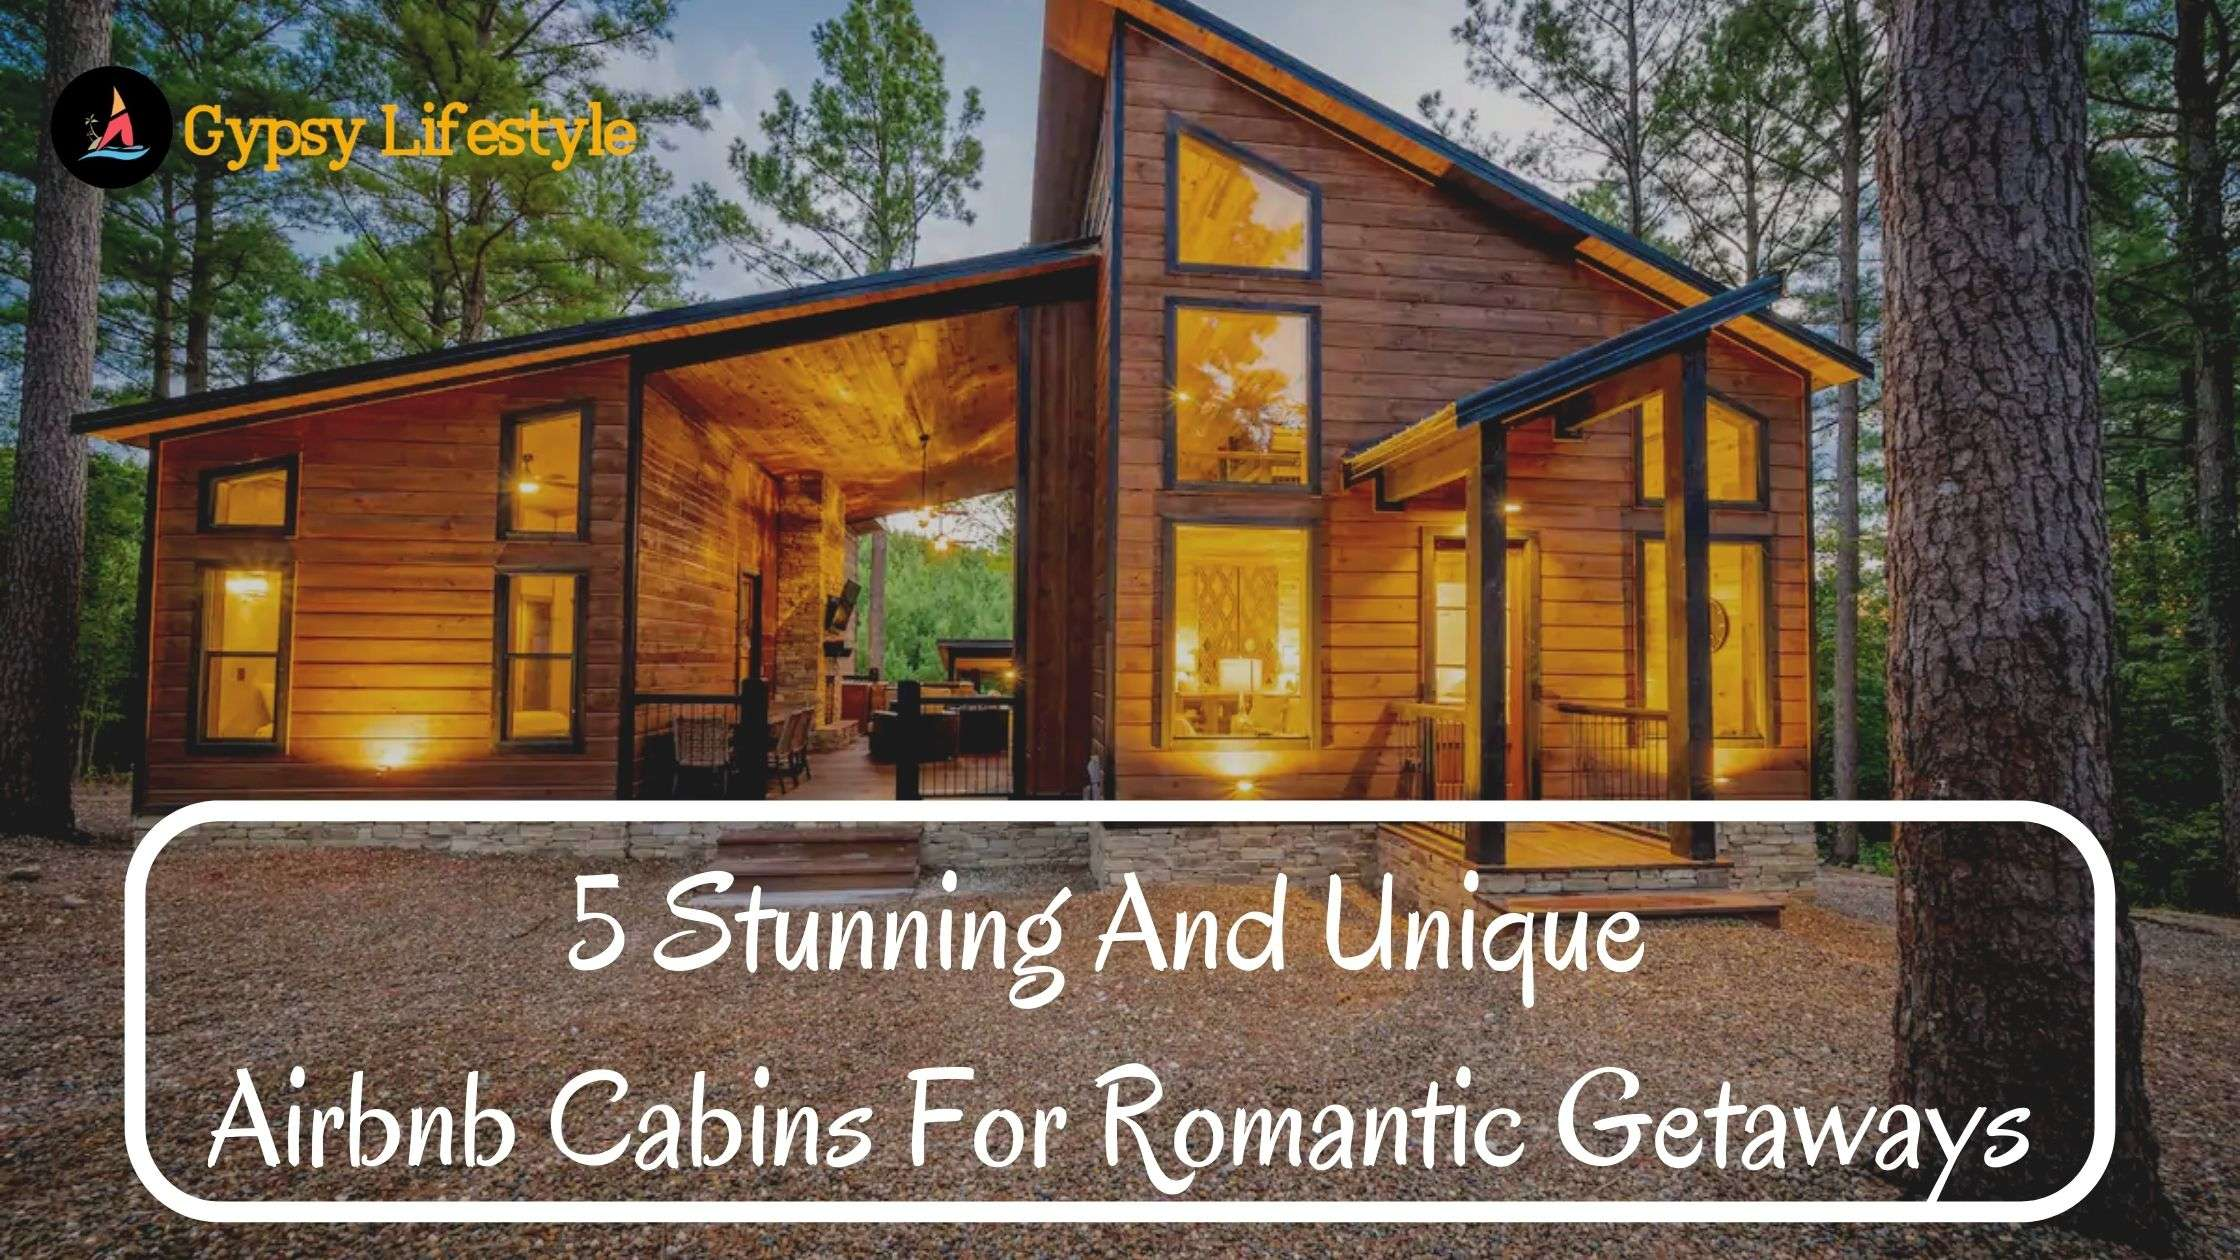 5 Stunning And Unique Airbnb Cabins For Romantic Getaways